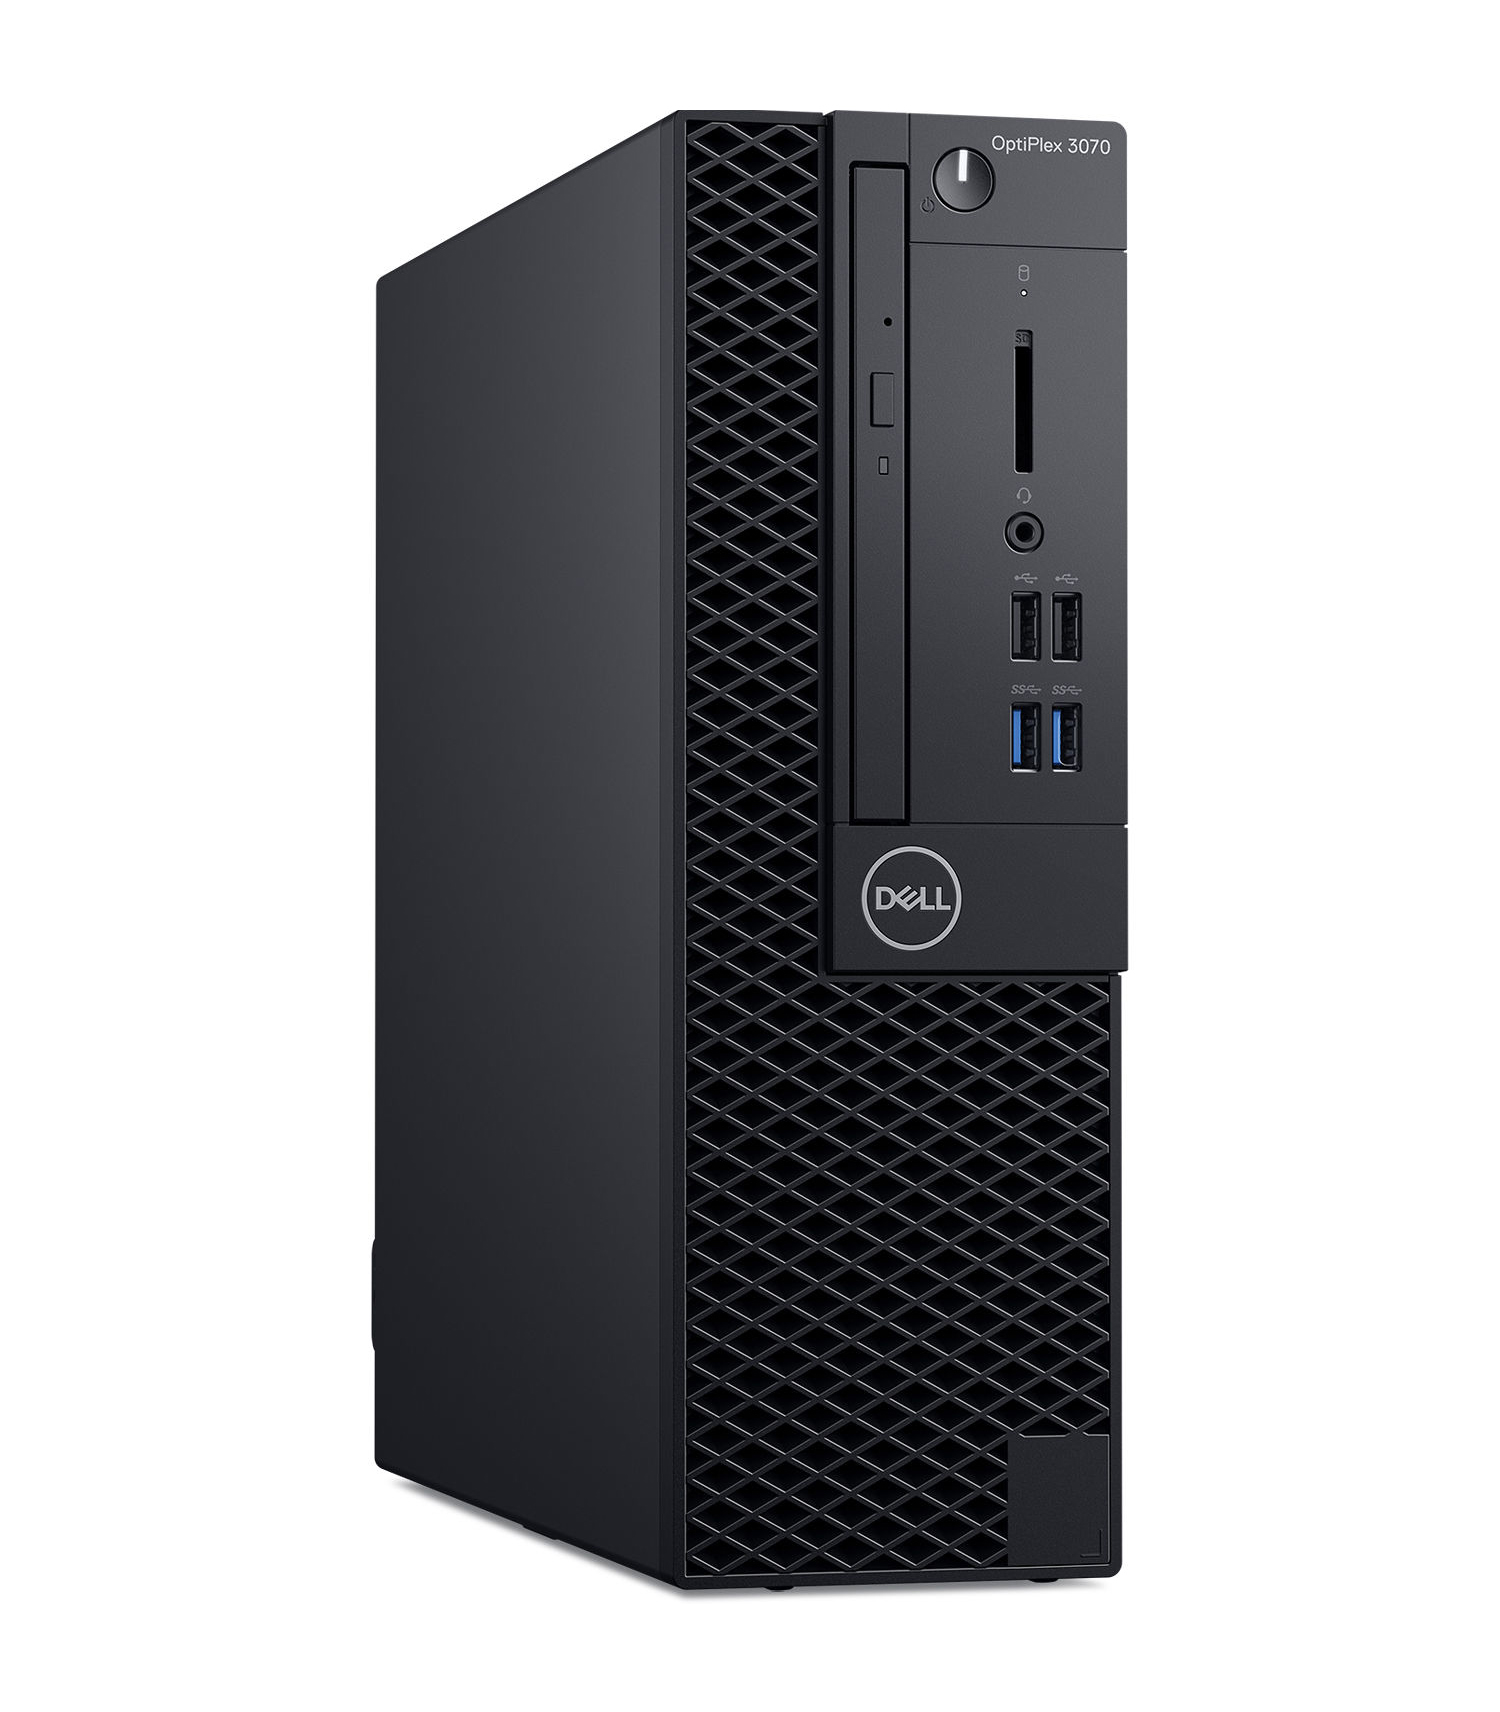 Dell OptiPlex 3070 Minitower 3YSP